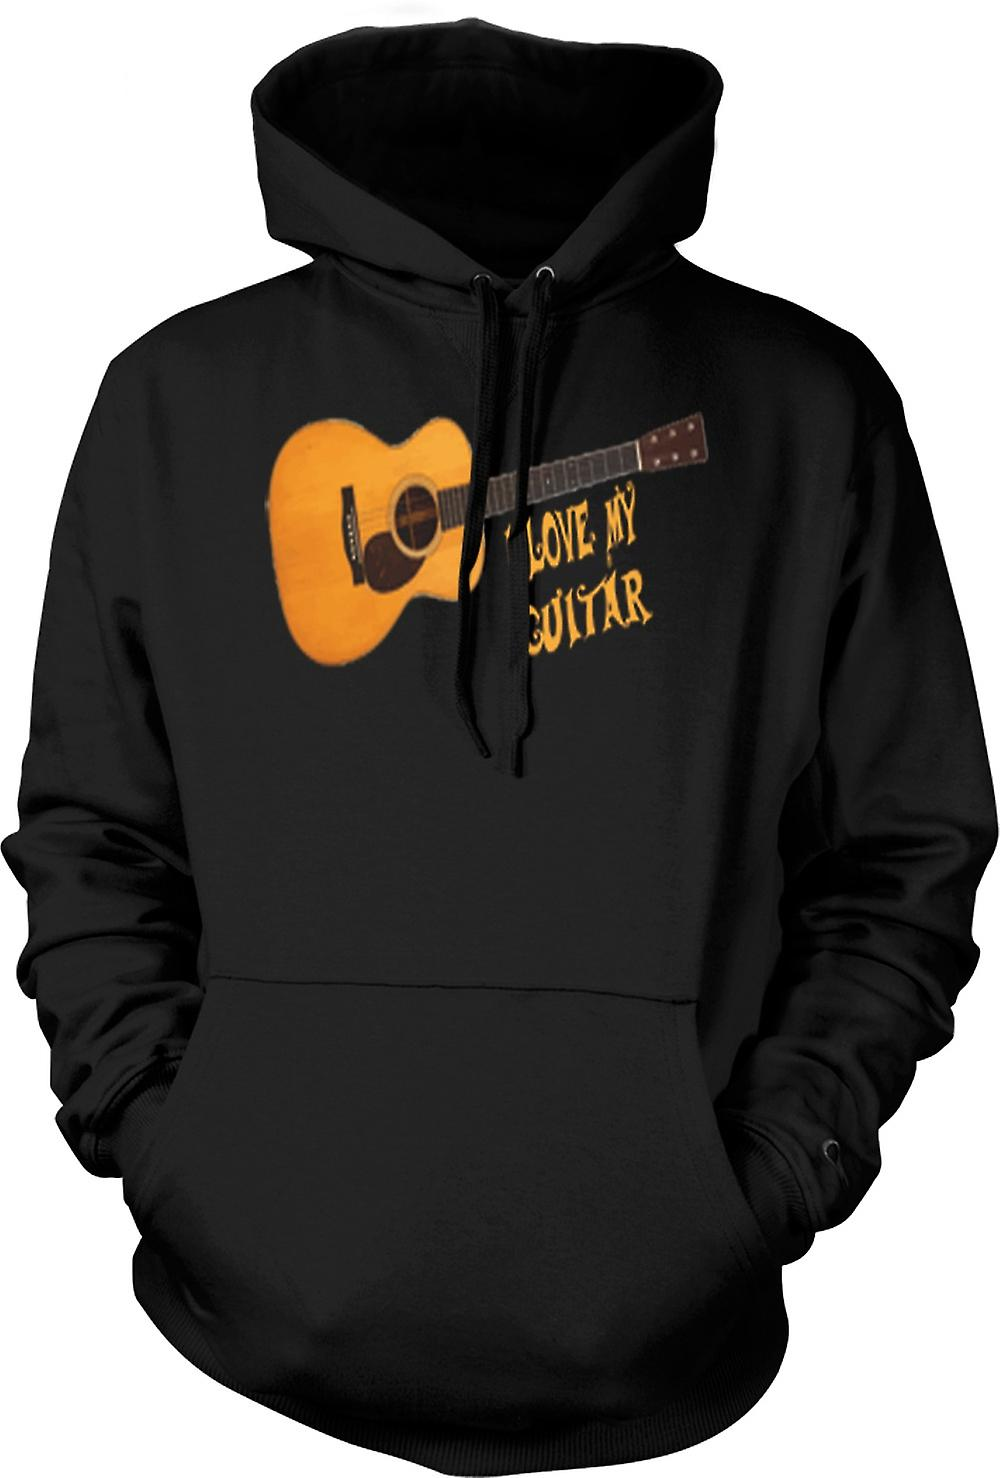 Mens Hoodie - I Love My Acoustic Guitar